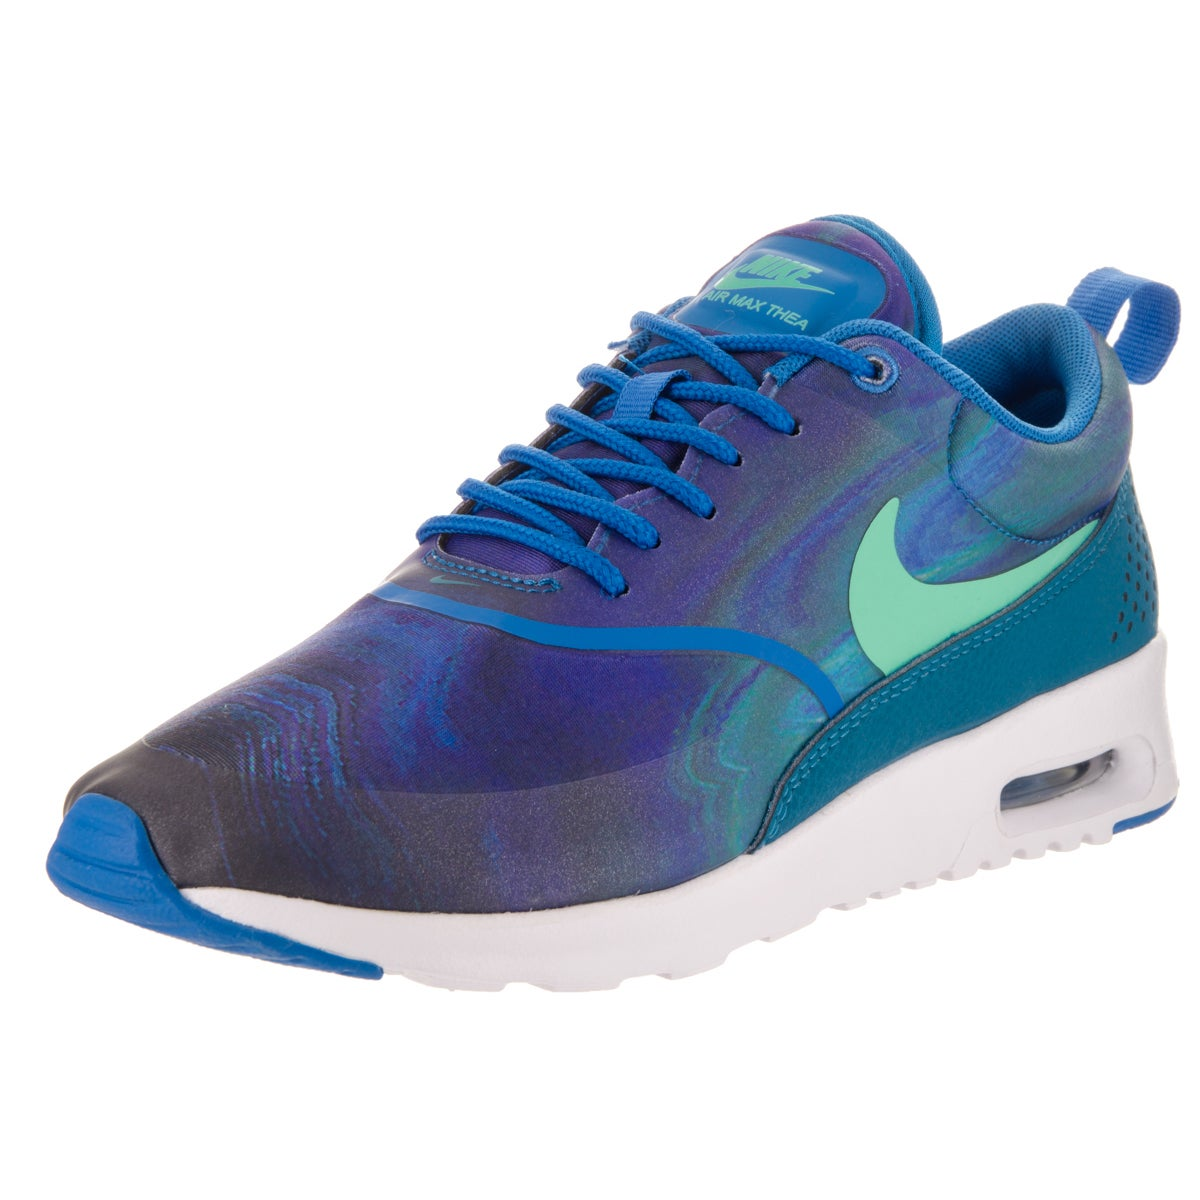 Nike Women's Air Max Blue Gradient Thea Print Running Sho...